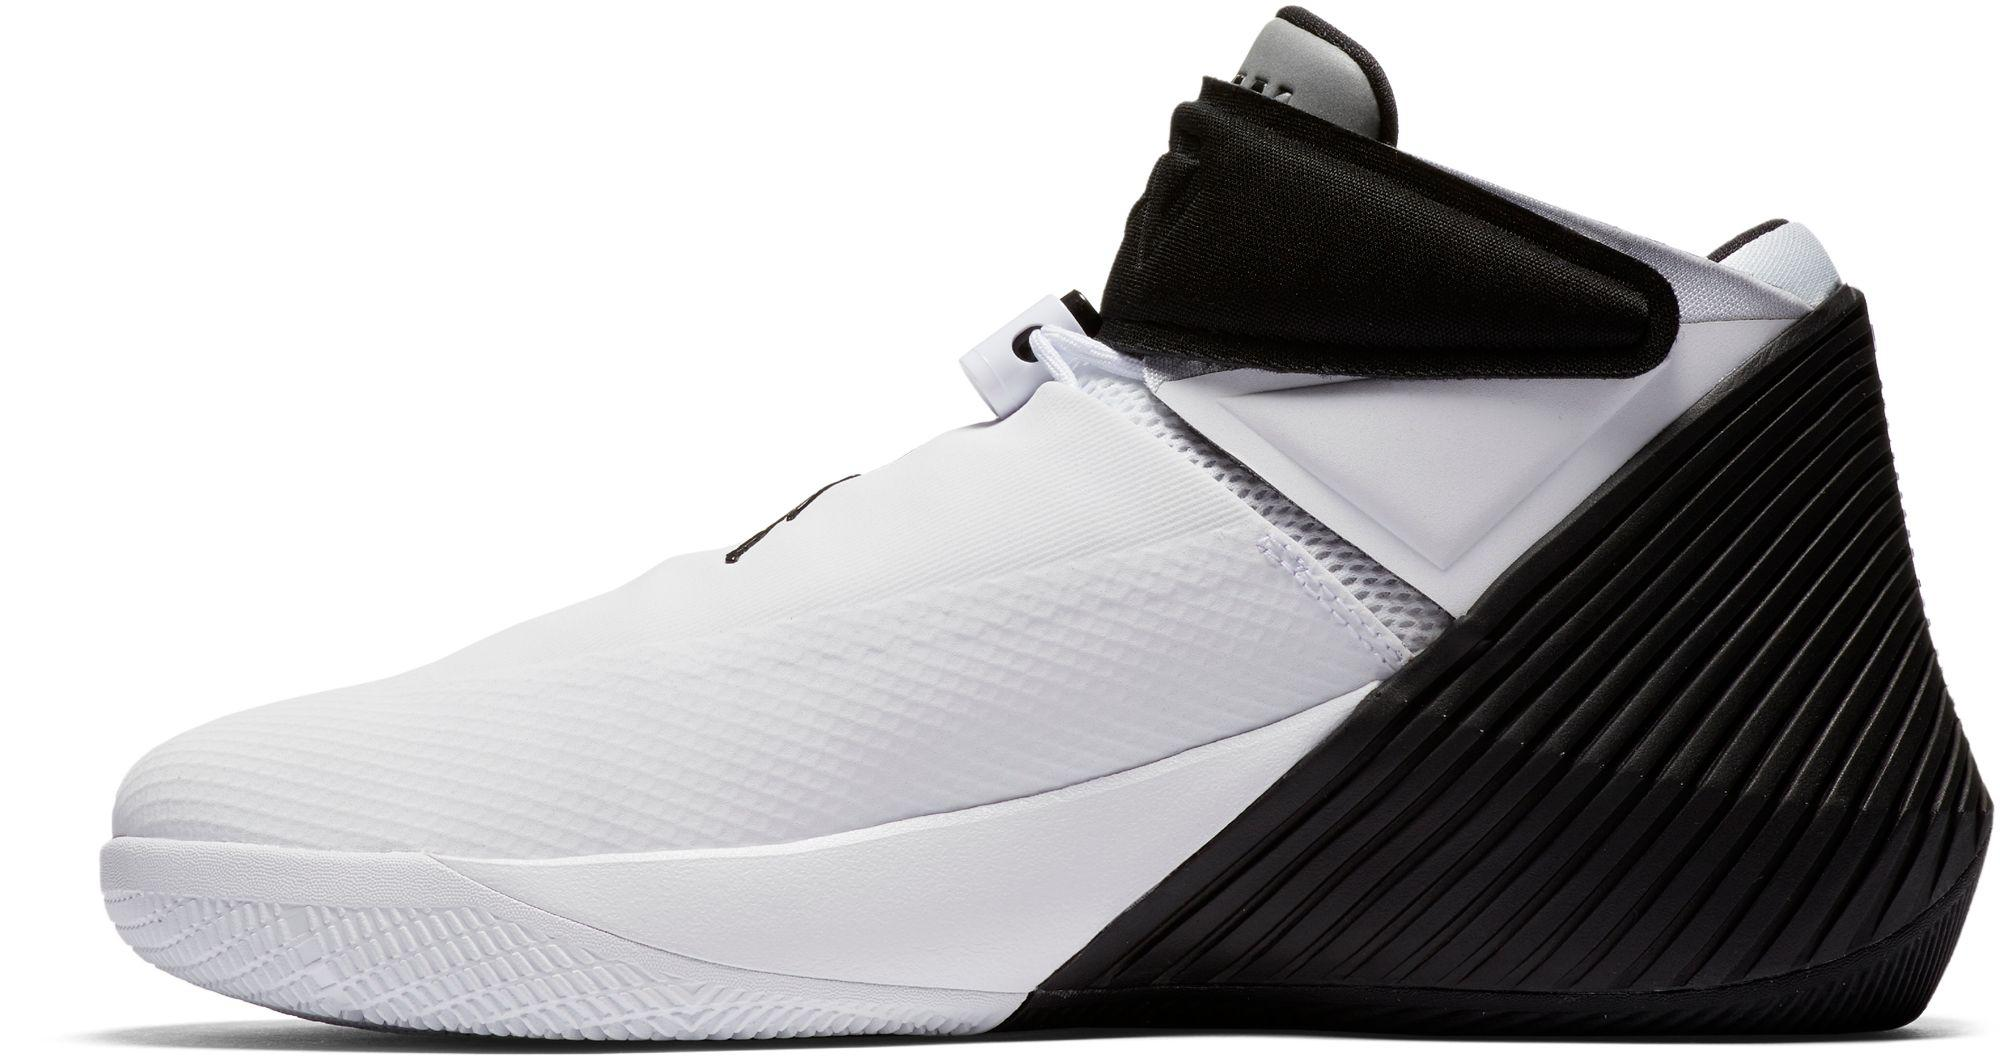 ac79382b2 Lyst - Nike Why Not Zer0.1 Basketball Shoes in Black for Men